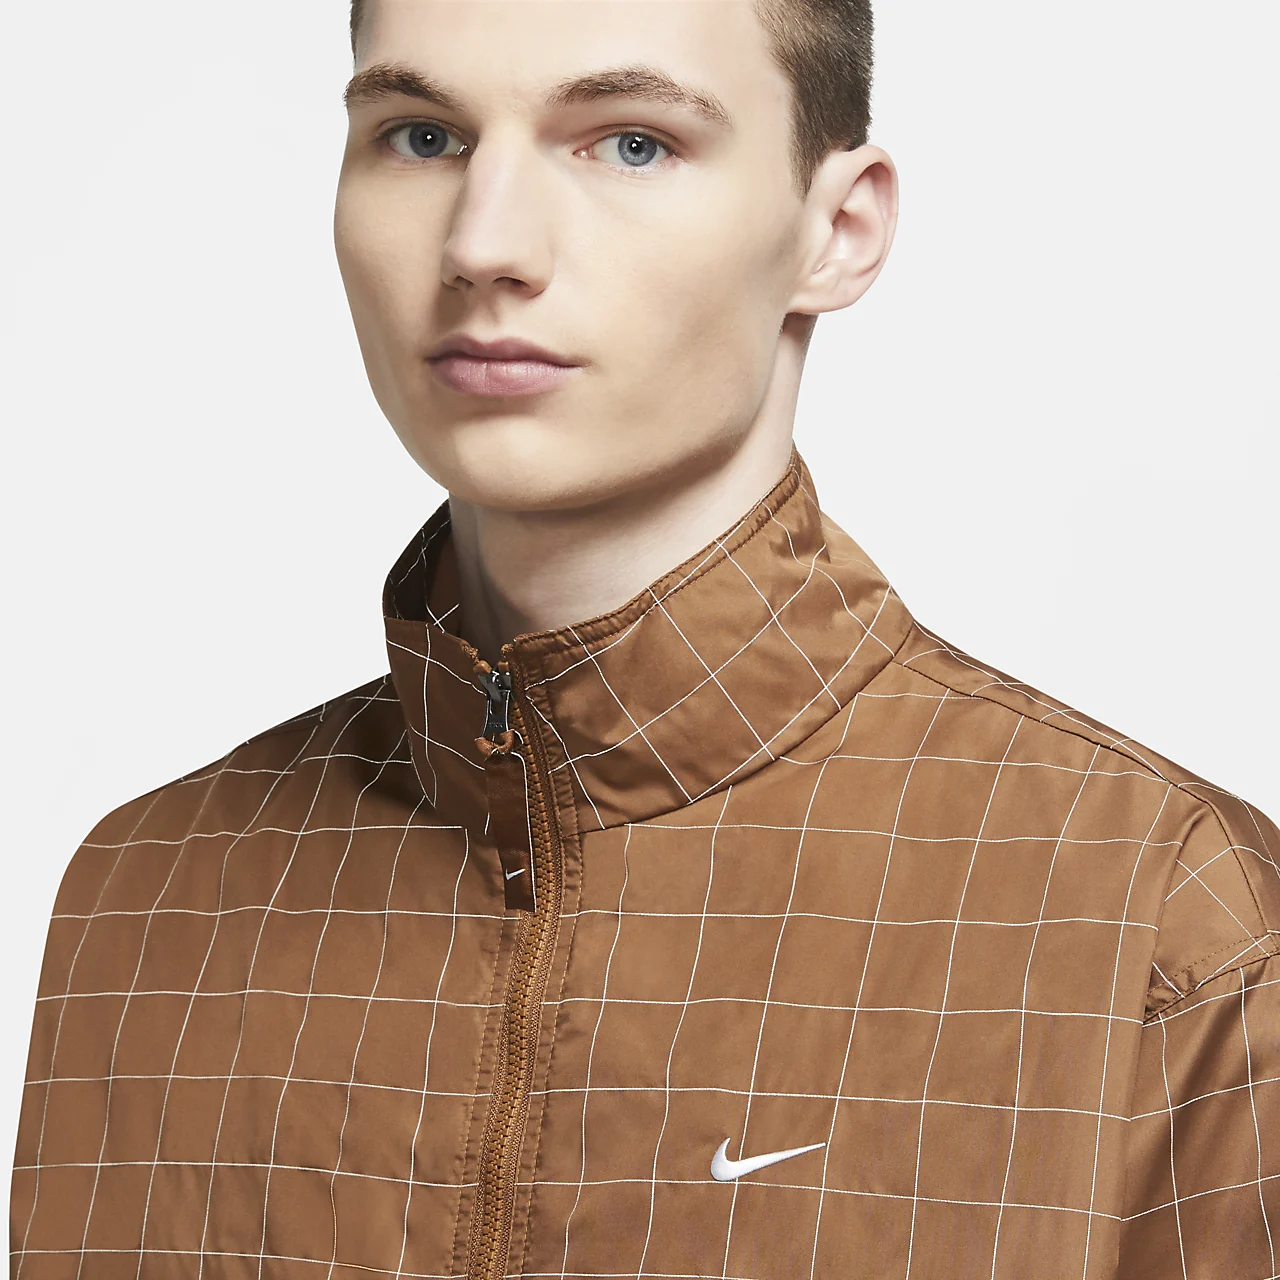 NikeLab Men's Flash Track Jacket CV0556-281